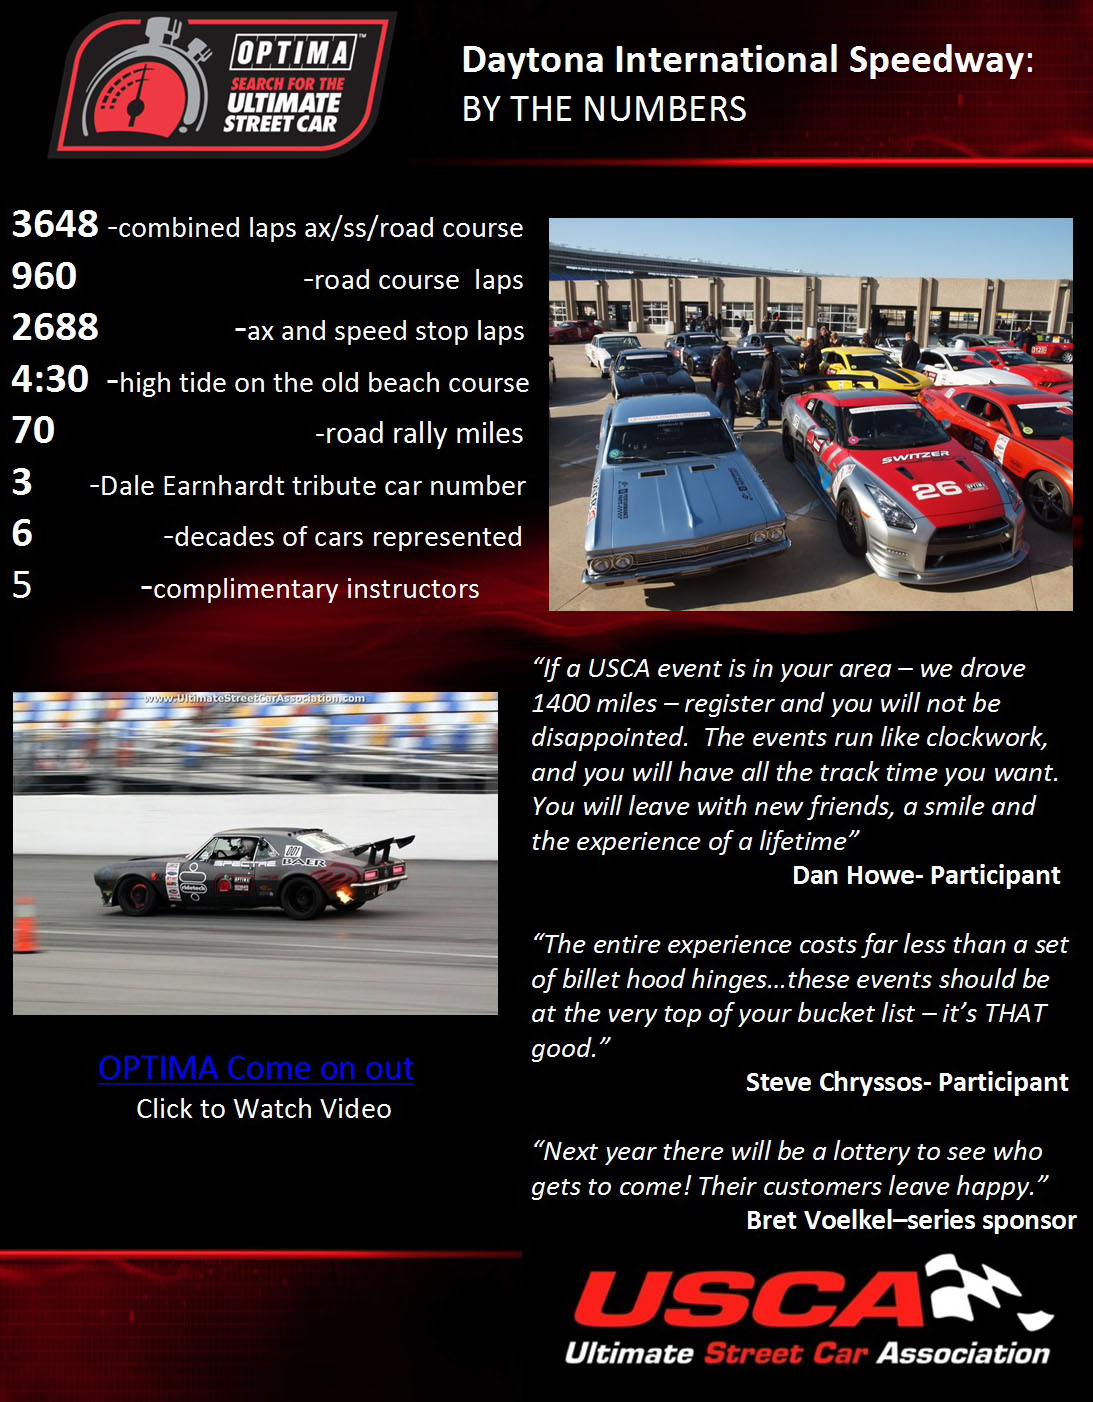 daytona_bythenumbers